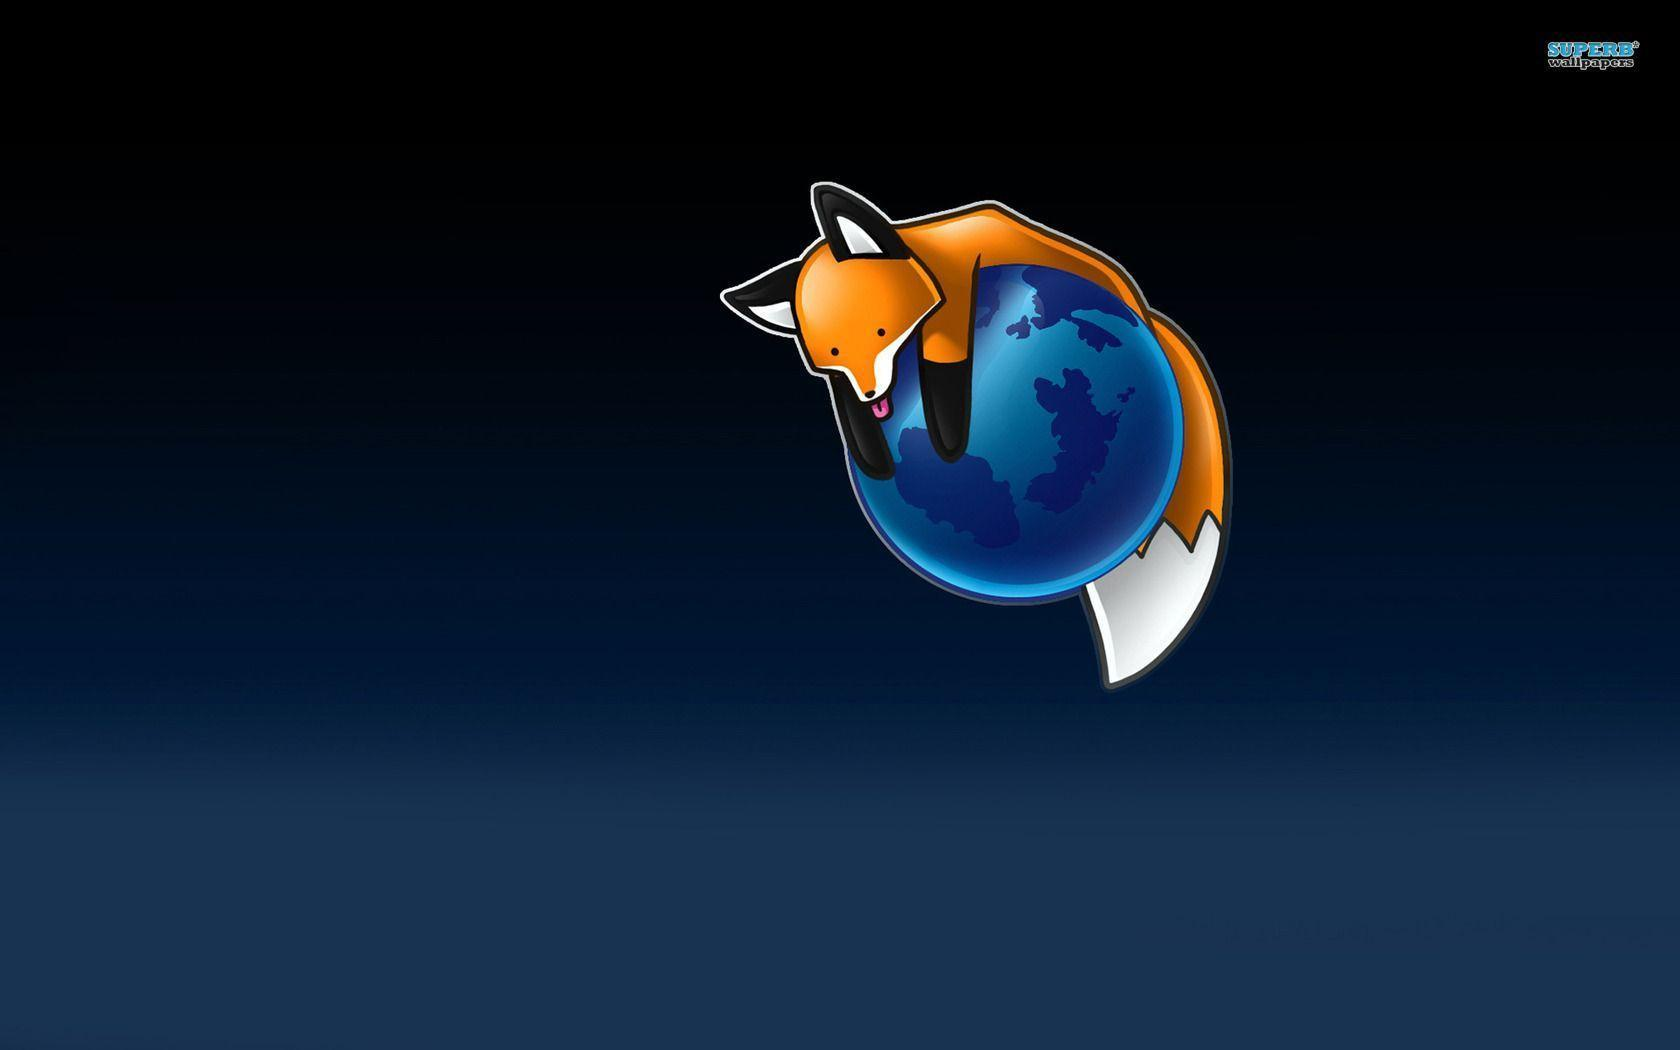 Firefox Wallpapers - Wallpaper Cave